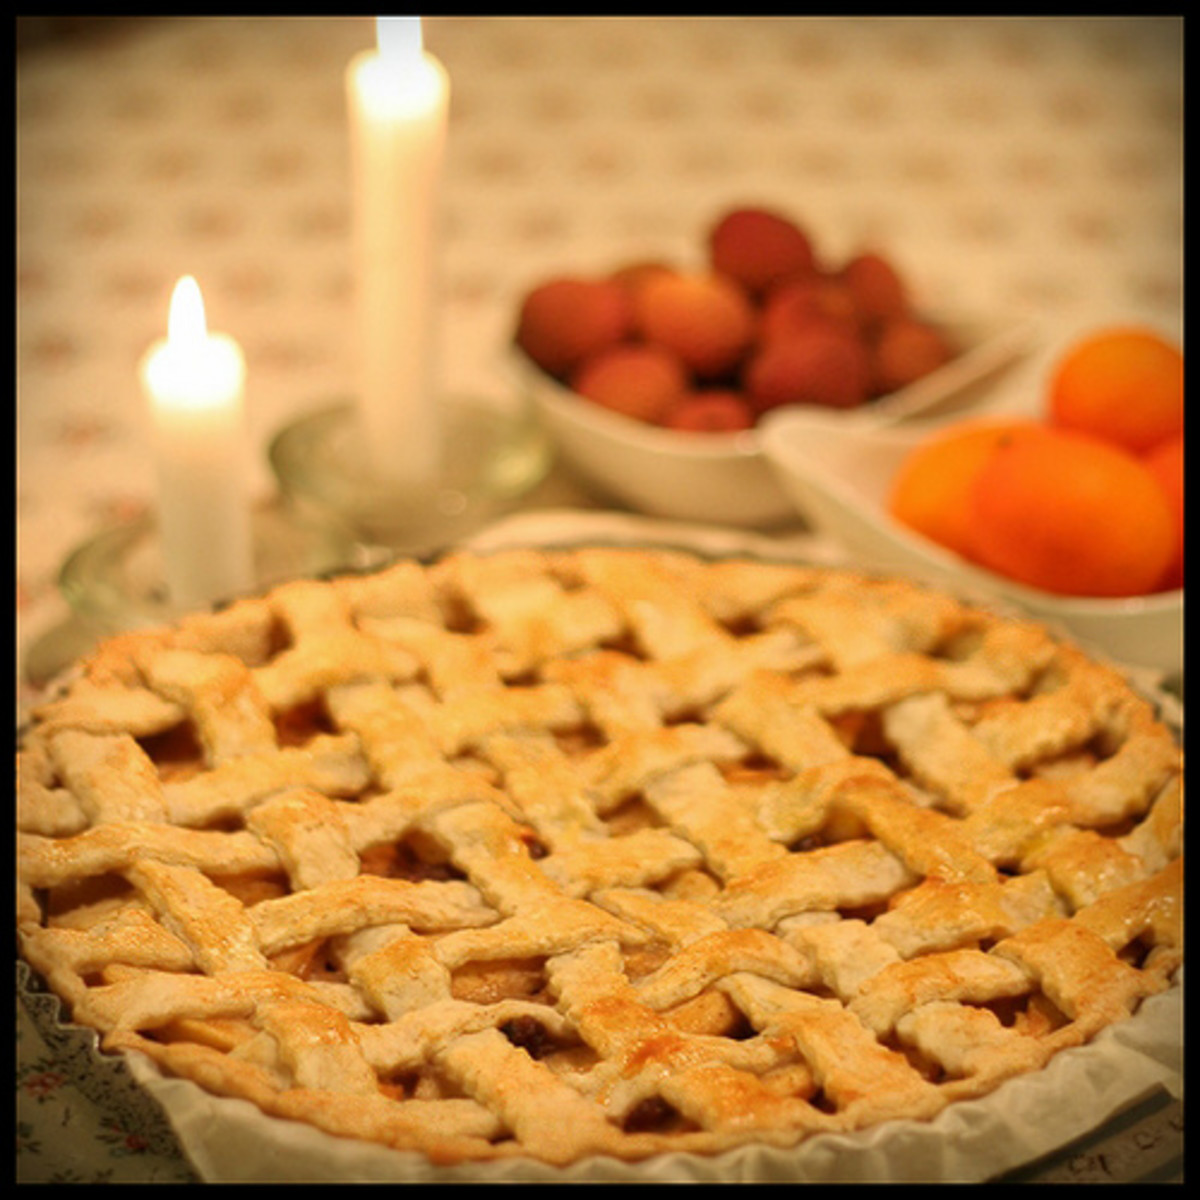 This is how a lattice pie crust is supposed to look.  The remaining photos were taken by the author.